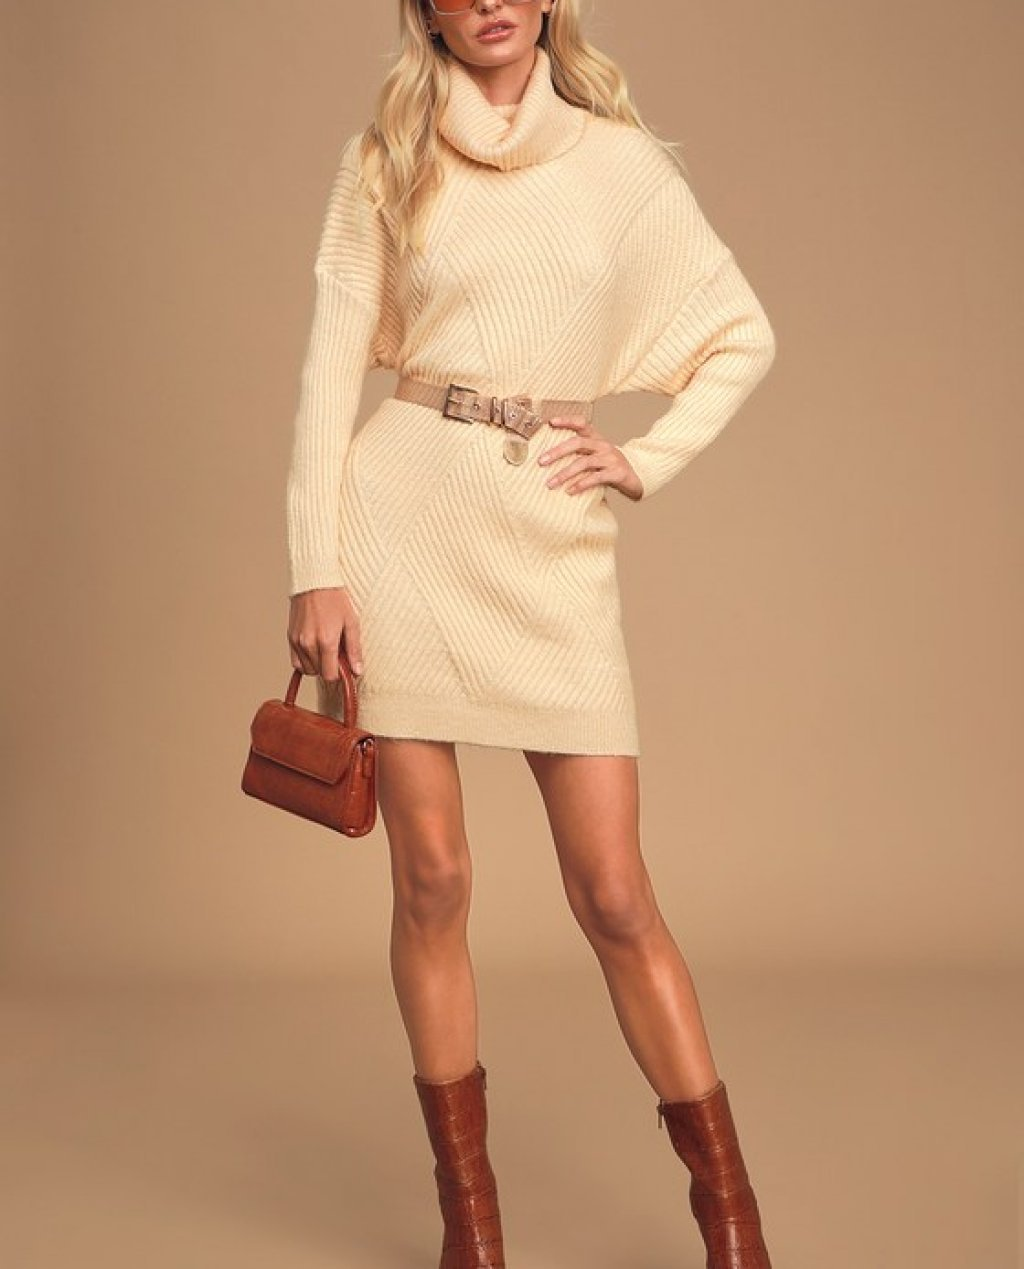 Its Charming Cream Ribbed Knit Turtleneck Sweater Dress